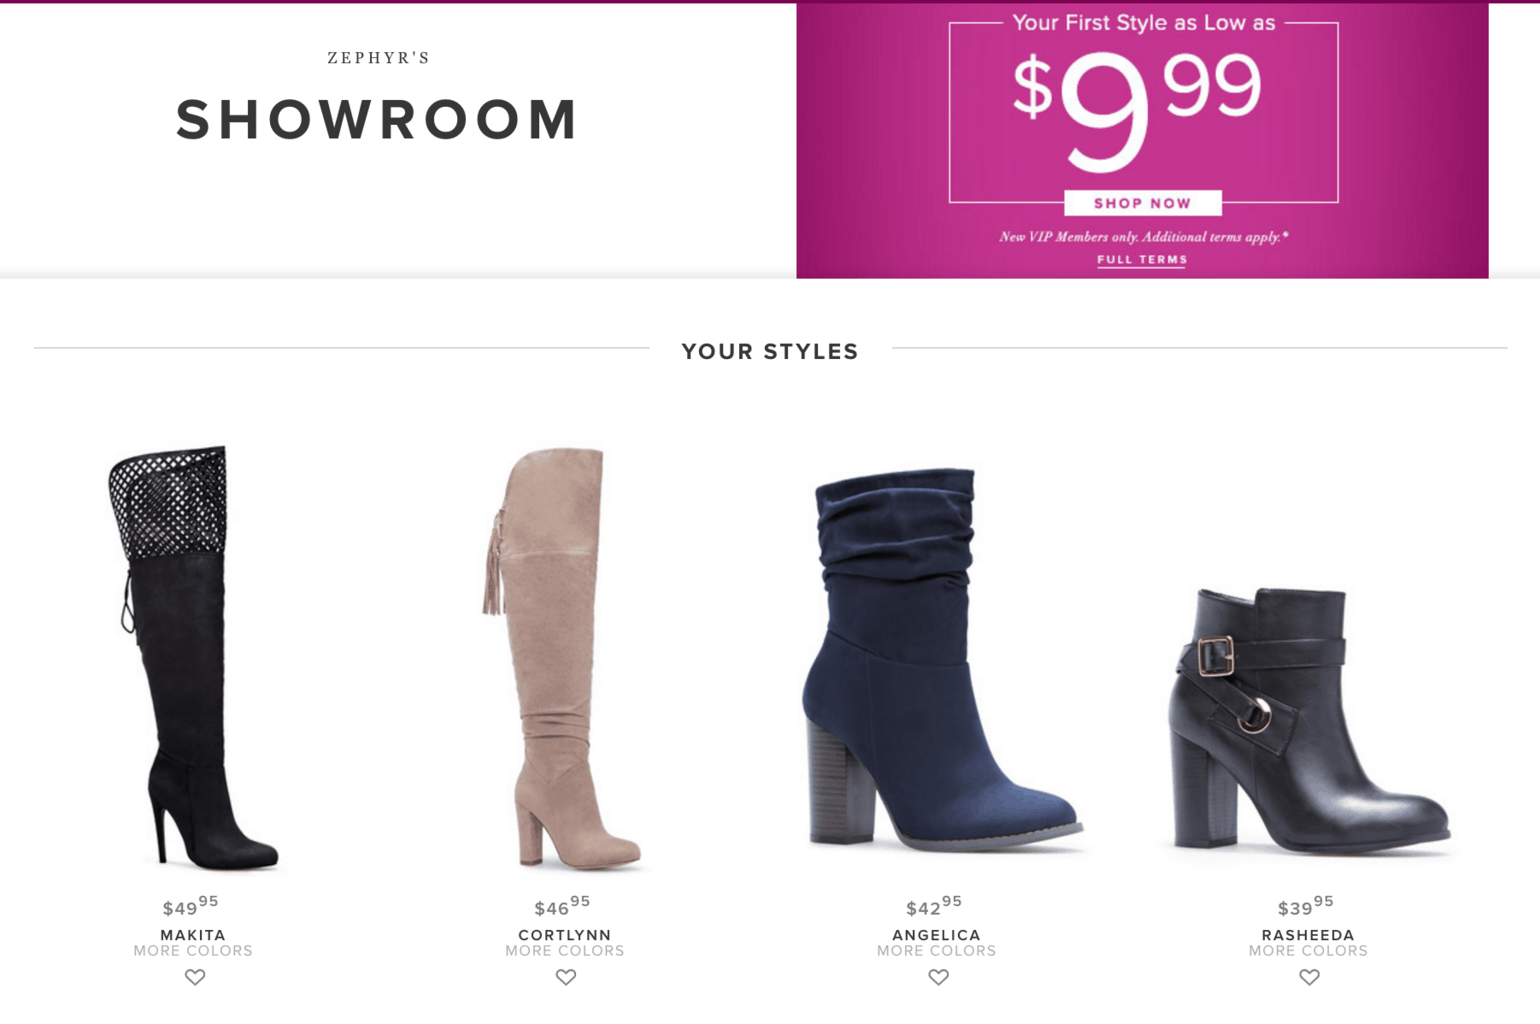 My Shoedazzle showroom